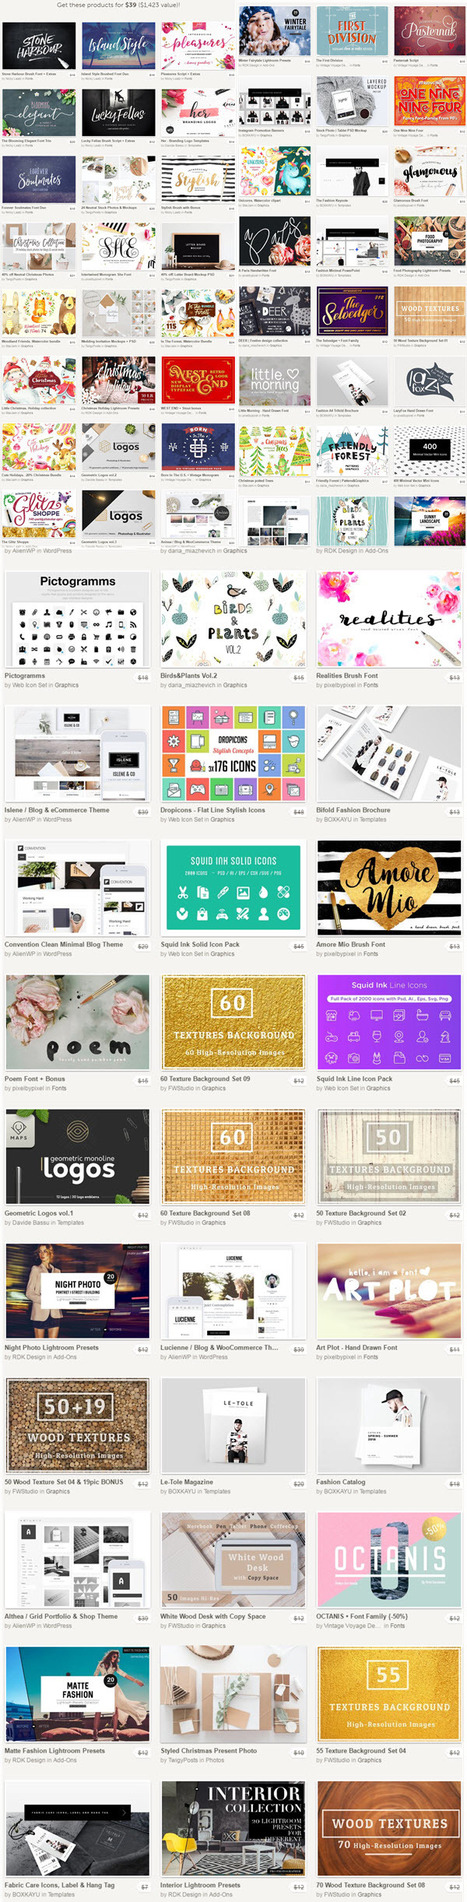 ★ December Big Bundle of Fonts, Mockups + Share to unlock 3 Freebies (5 days to go) | Design Freebies & Deals | Scoop.it